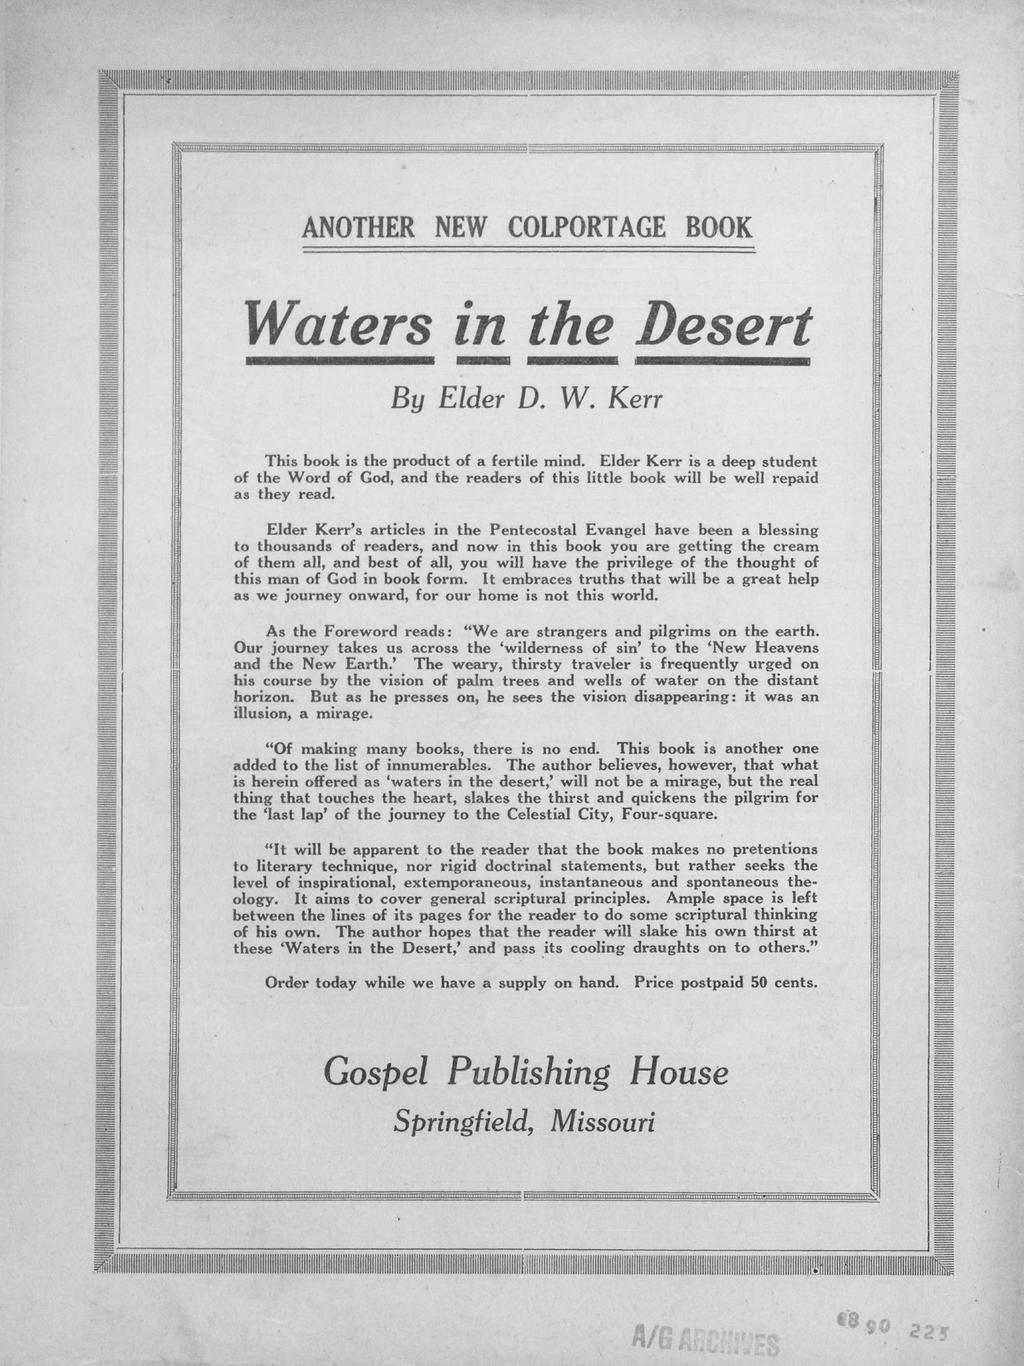 ANOTHER NEW COLPORTAGE BOOK Waters in the Desert By Elder D. W. Kerr This book is the product of a fertile mind.